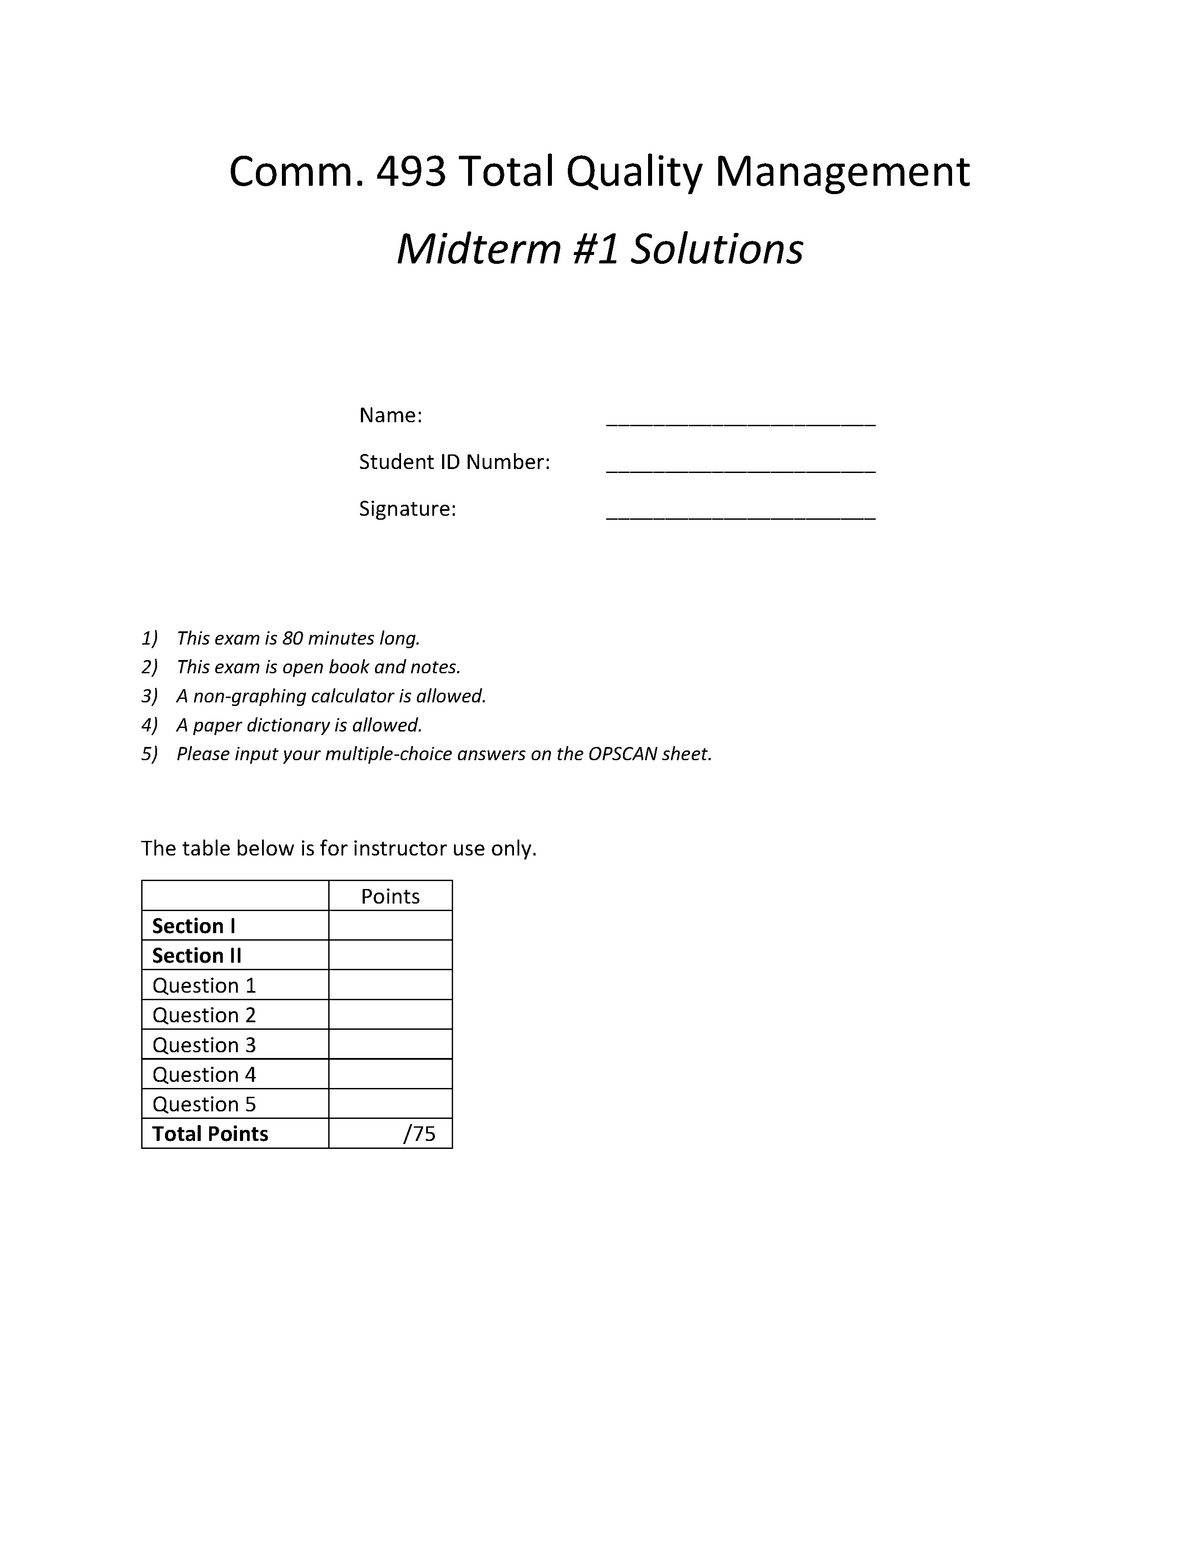 Exam 3 February 2016, questions and answers - Comm 493 3